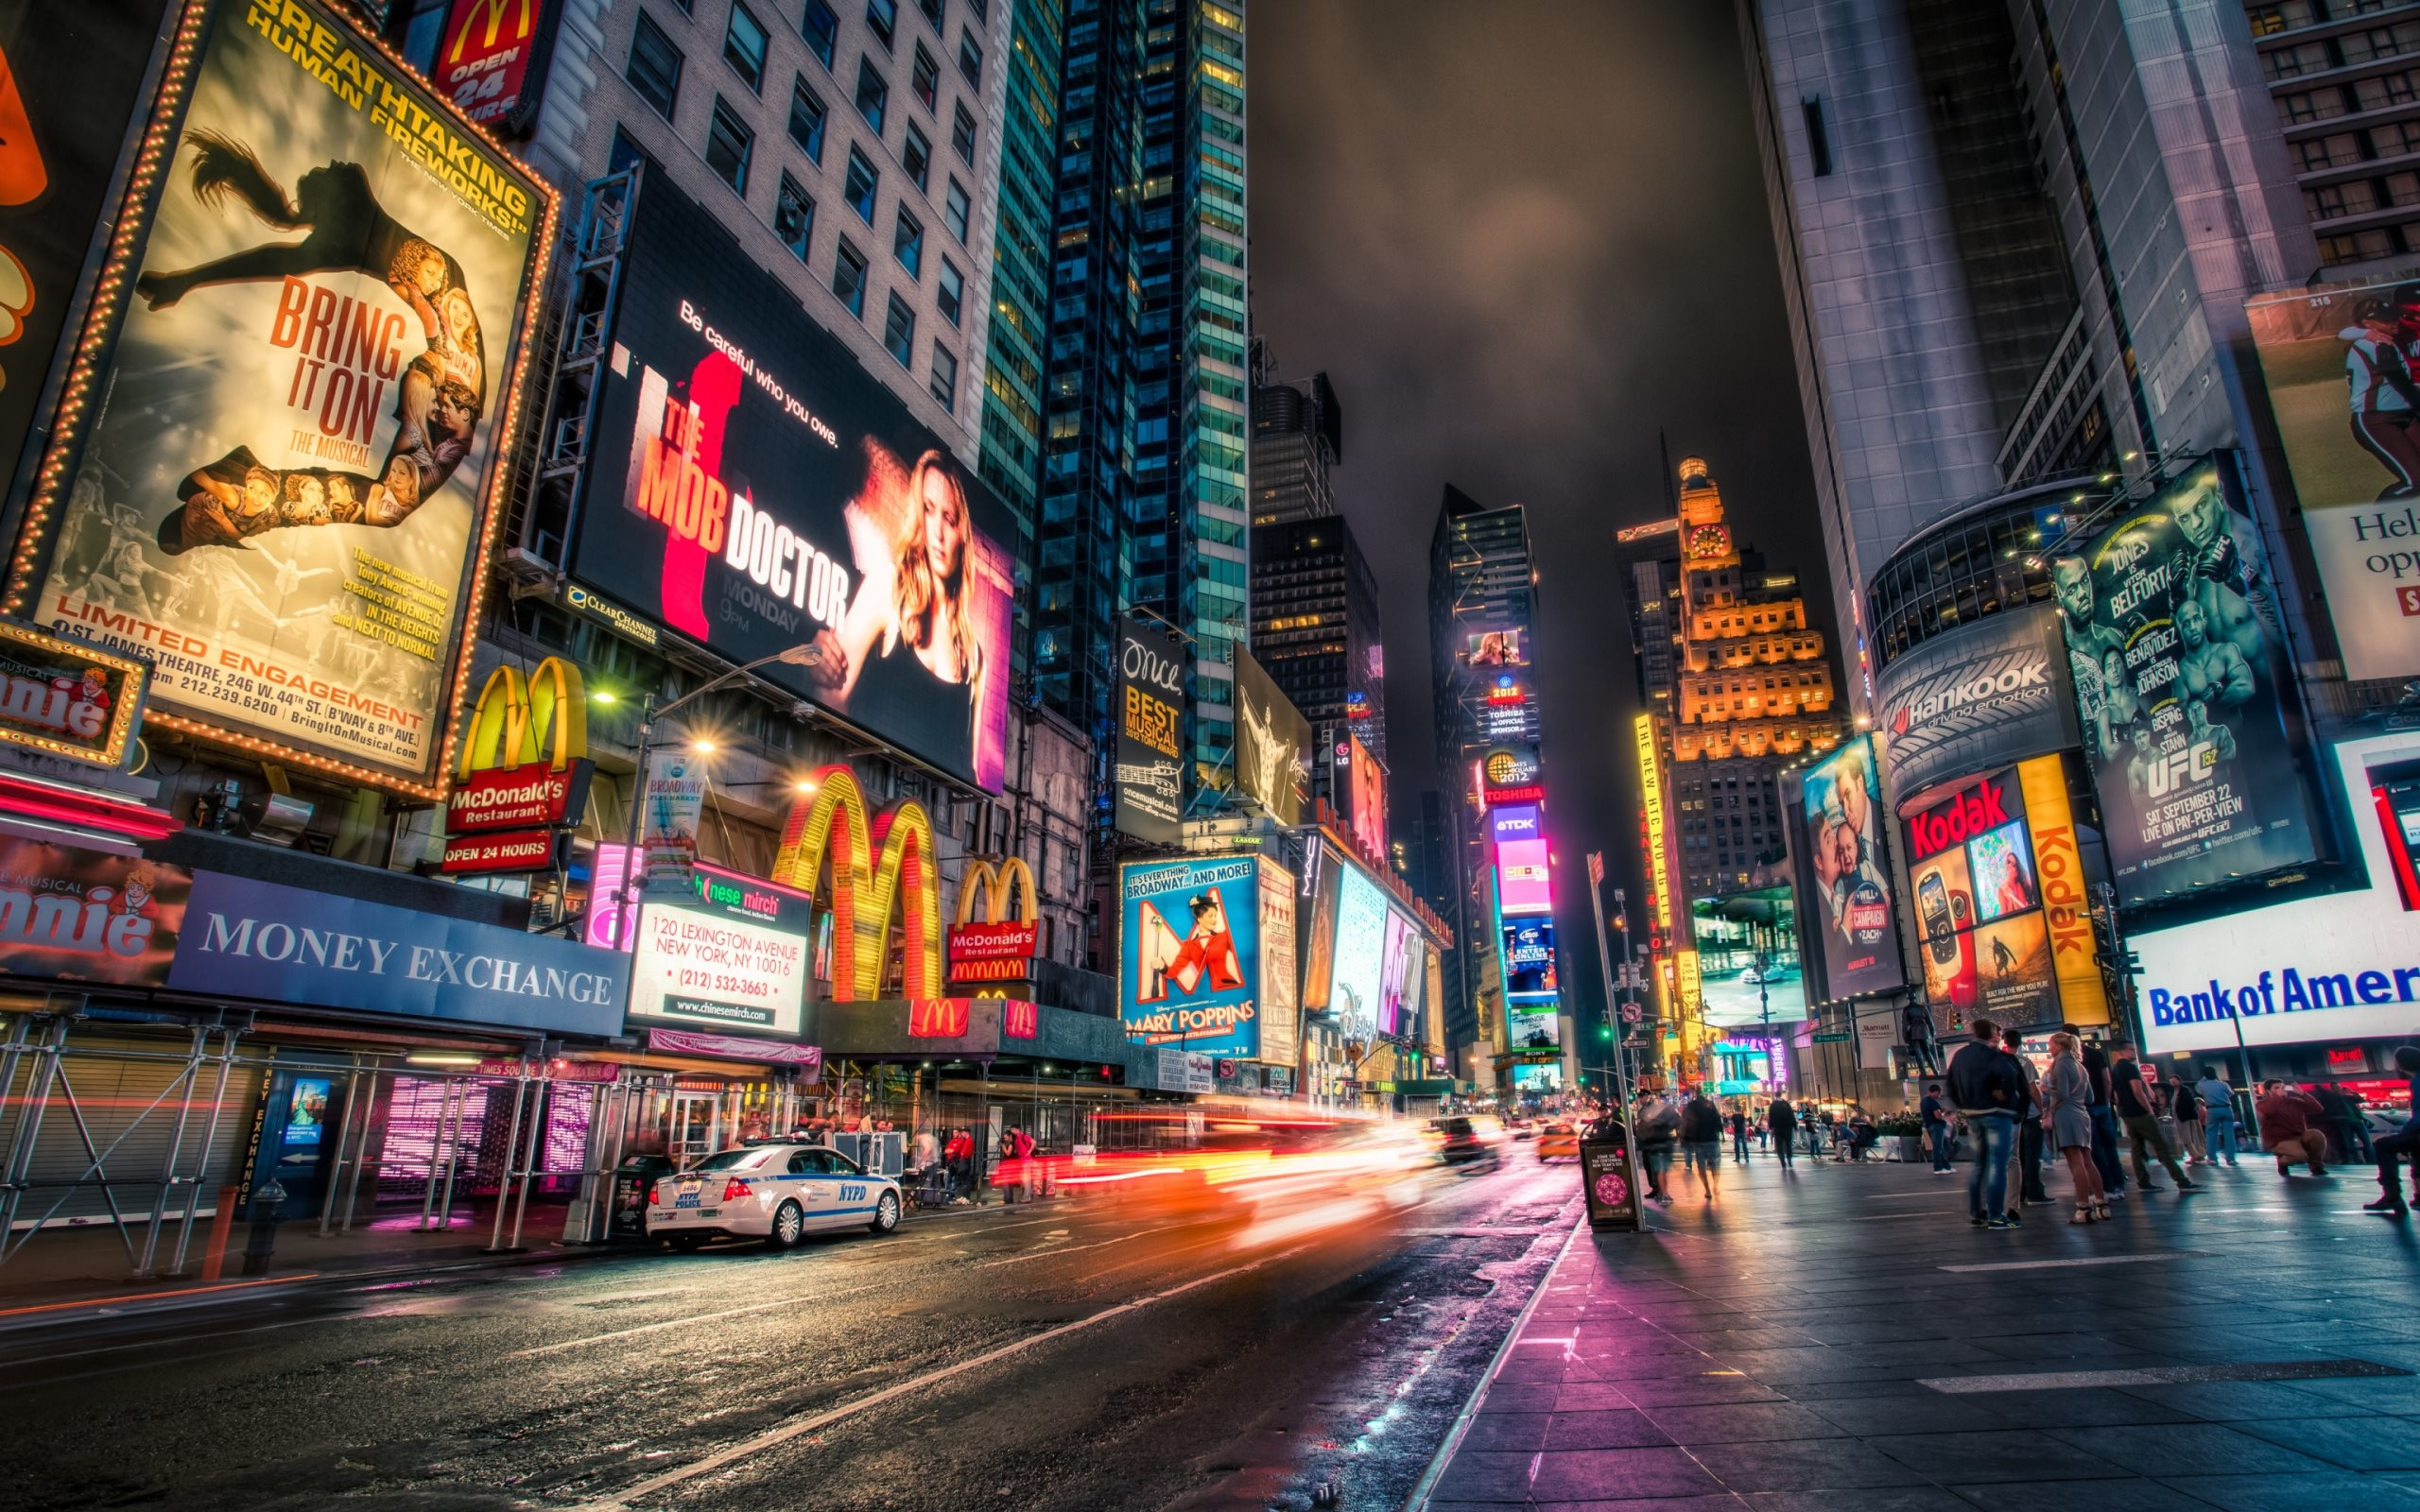 4k new york wallpaper 31 images - Times square background ...